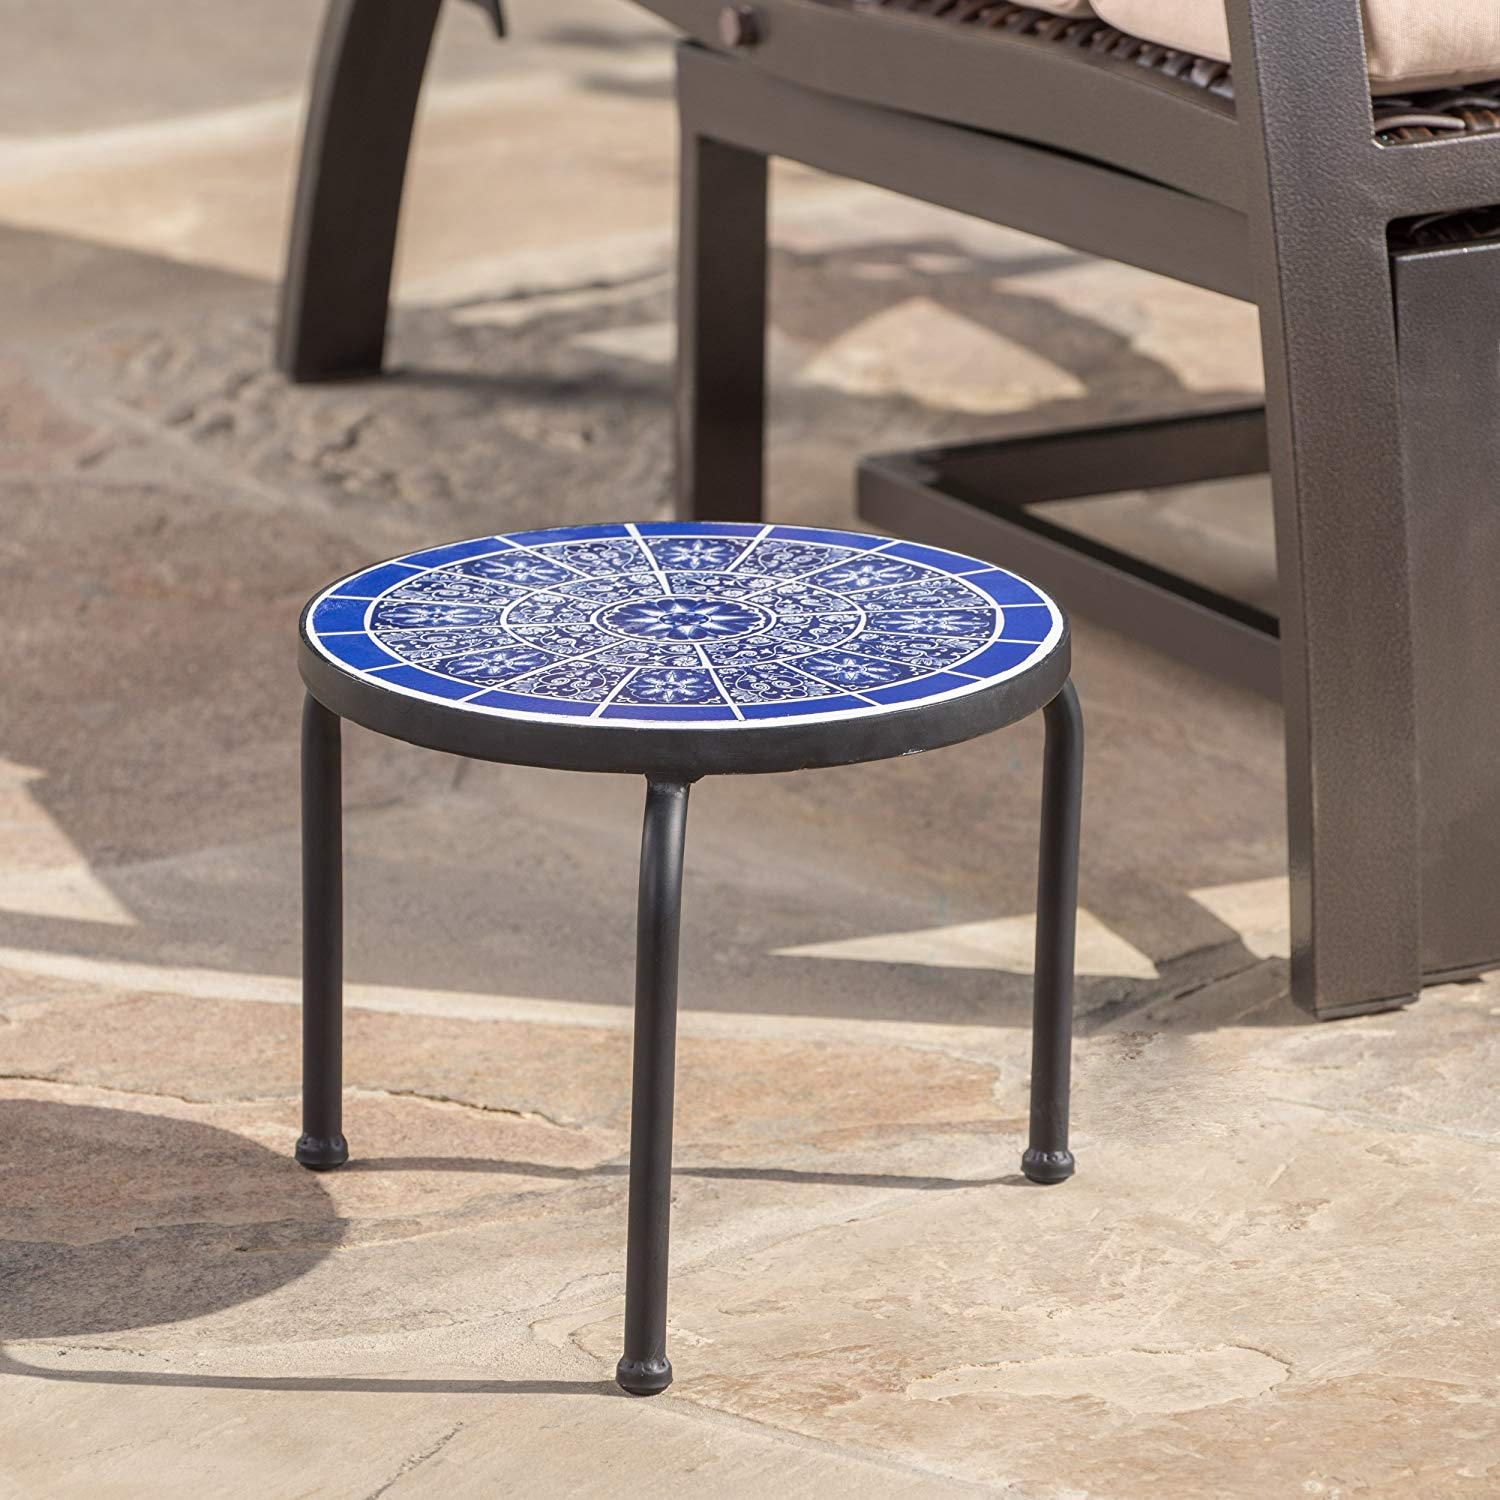 soleil outdoor blue white ceramic iron frame tile side table garden console height homesense coffee circular furniture covers barnwood cabinets small linen tablecloth used end